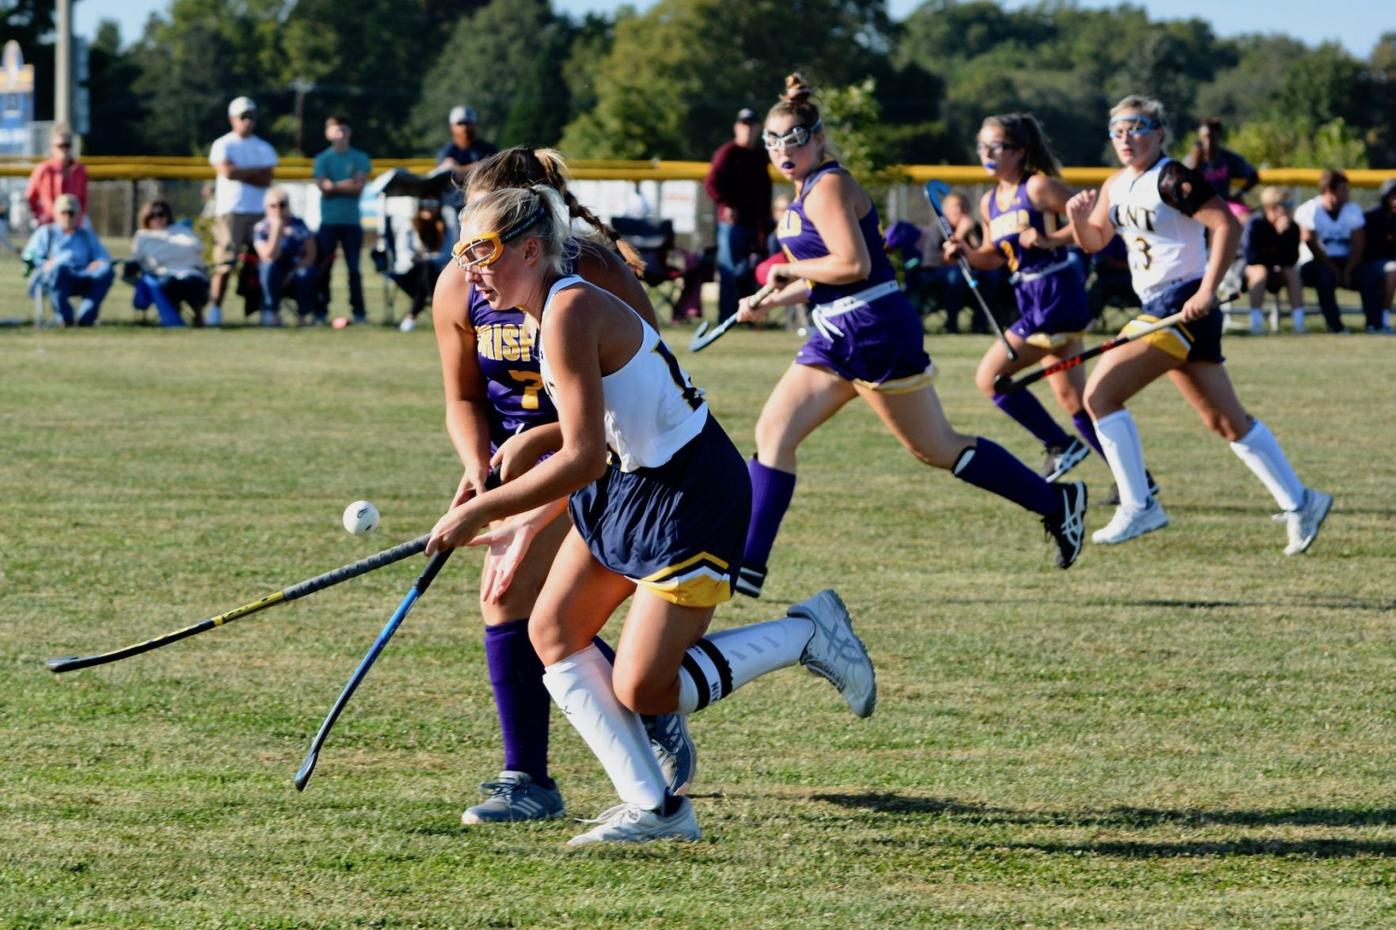 Fall sports get the OK for Feb. 13 start